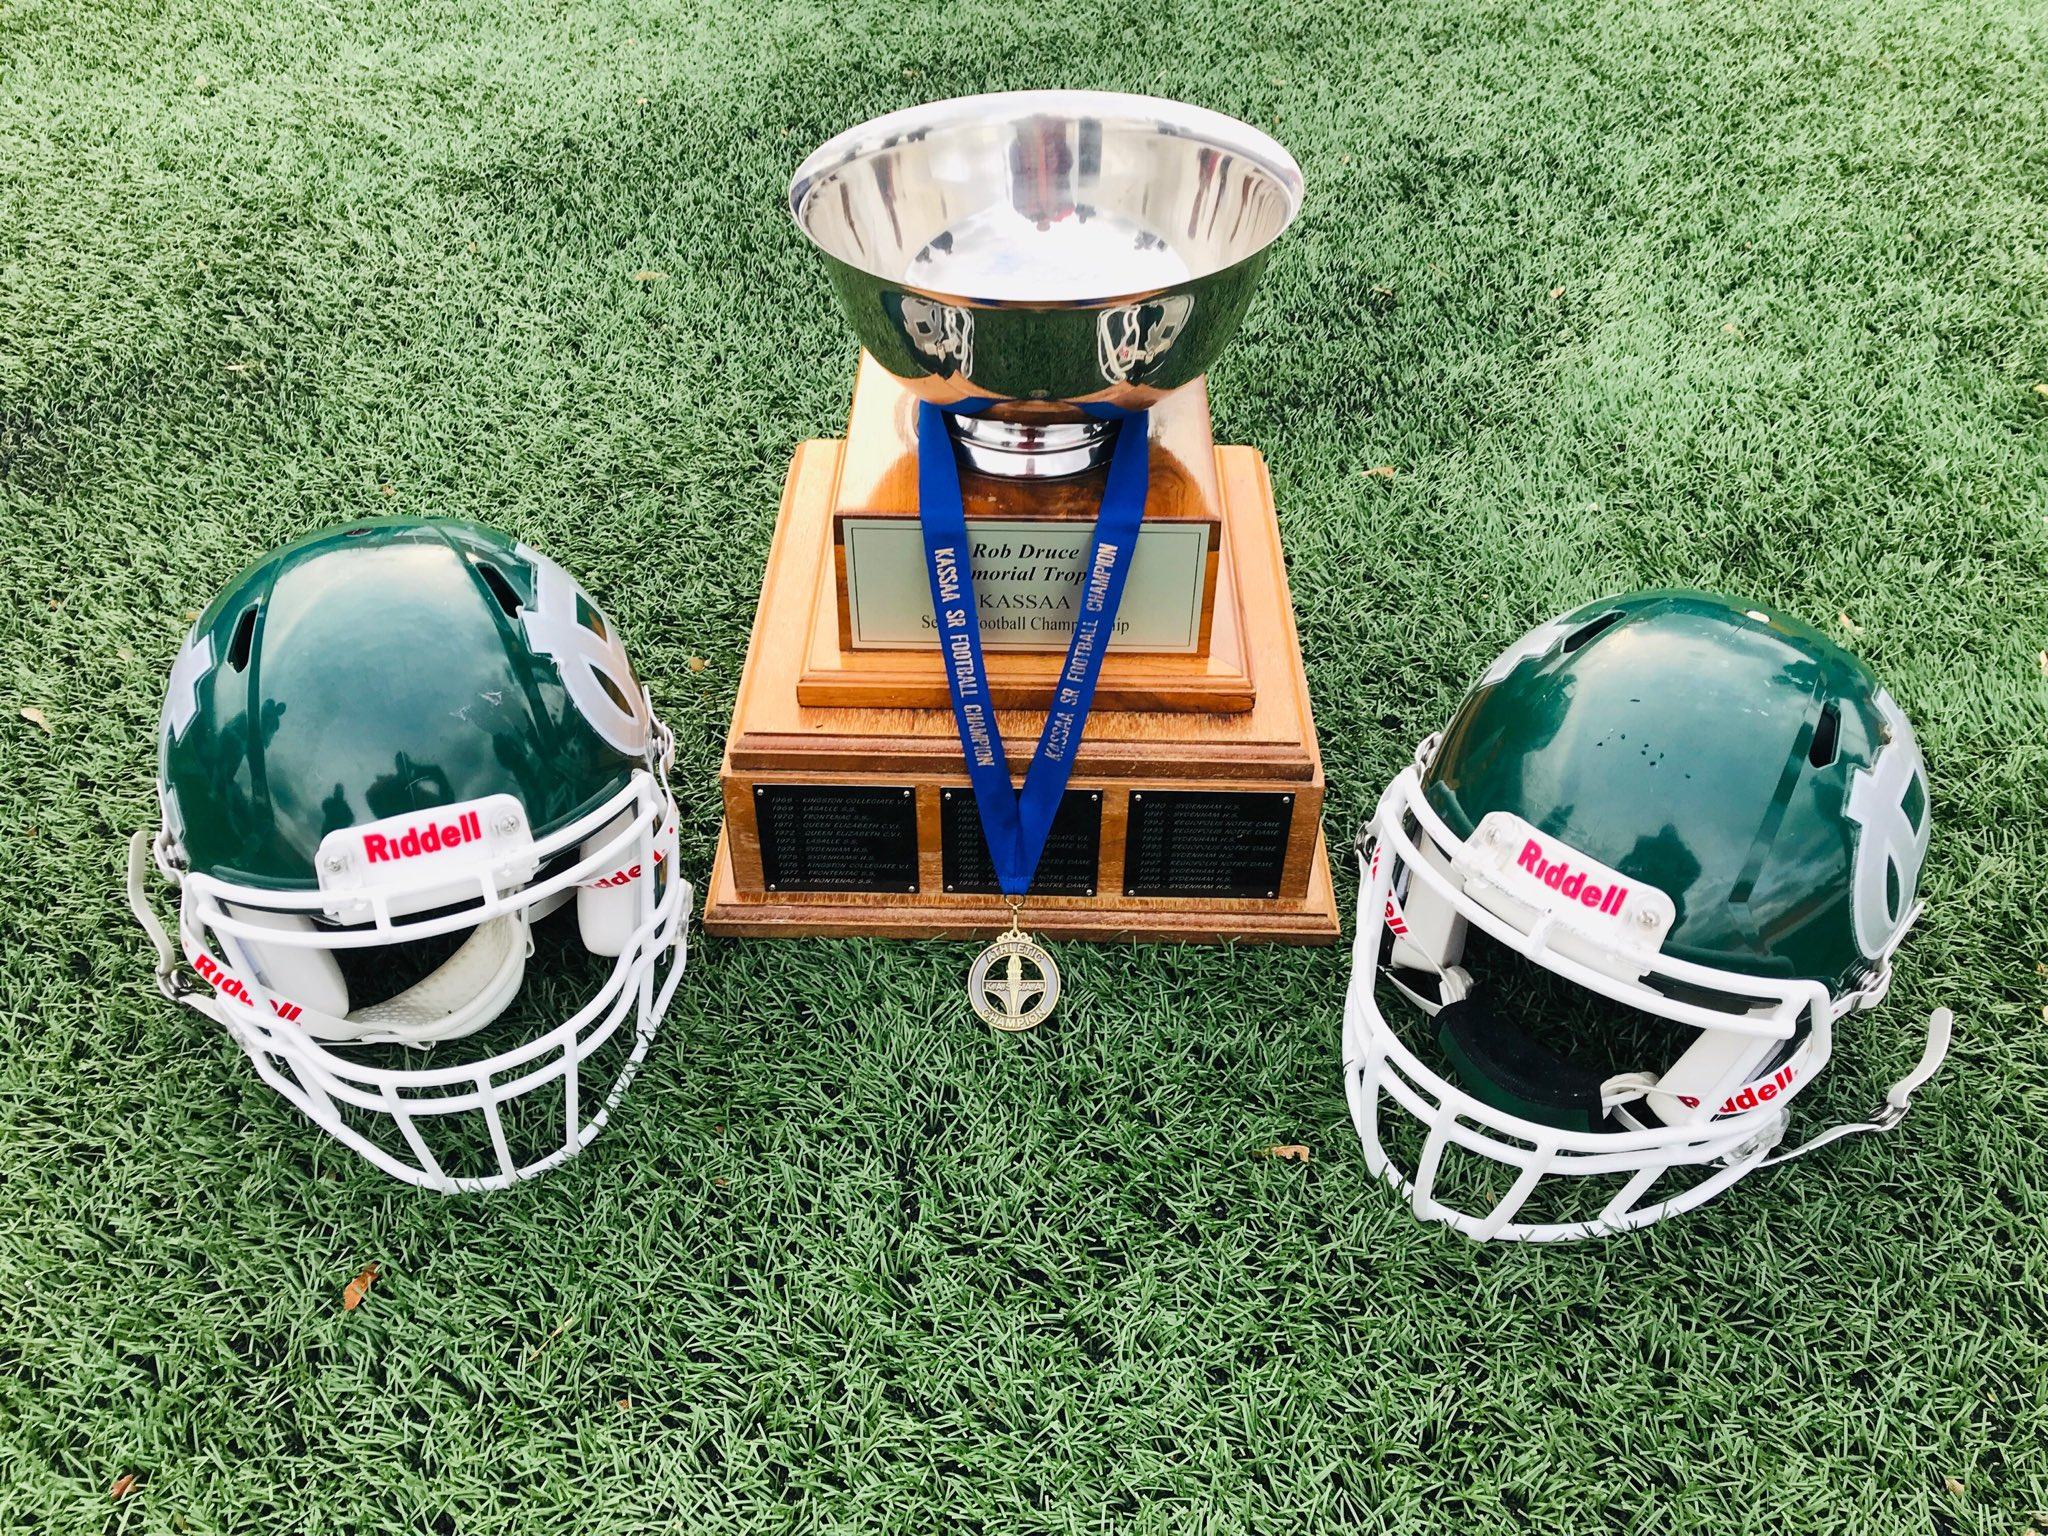 Two Football helmets and a trophy with medal attached.